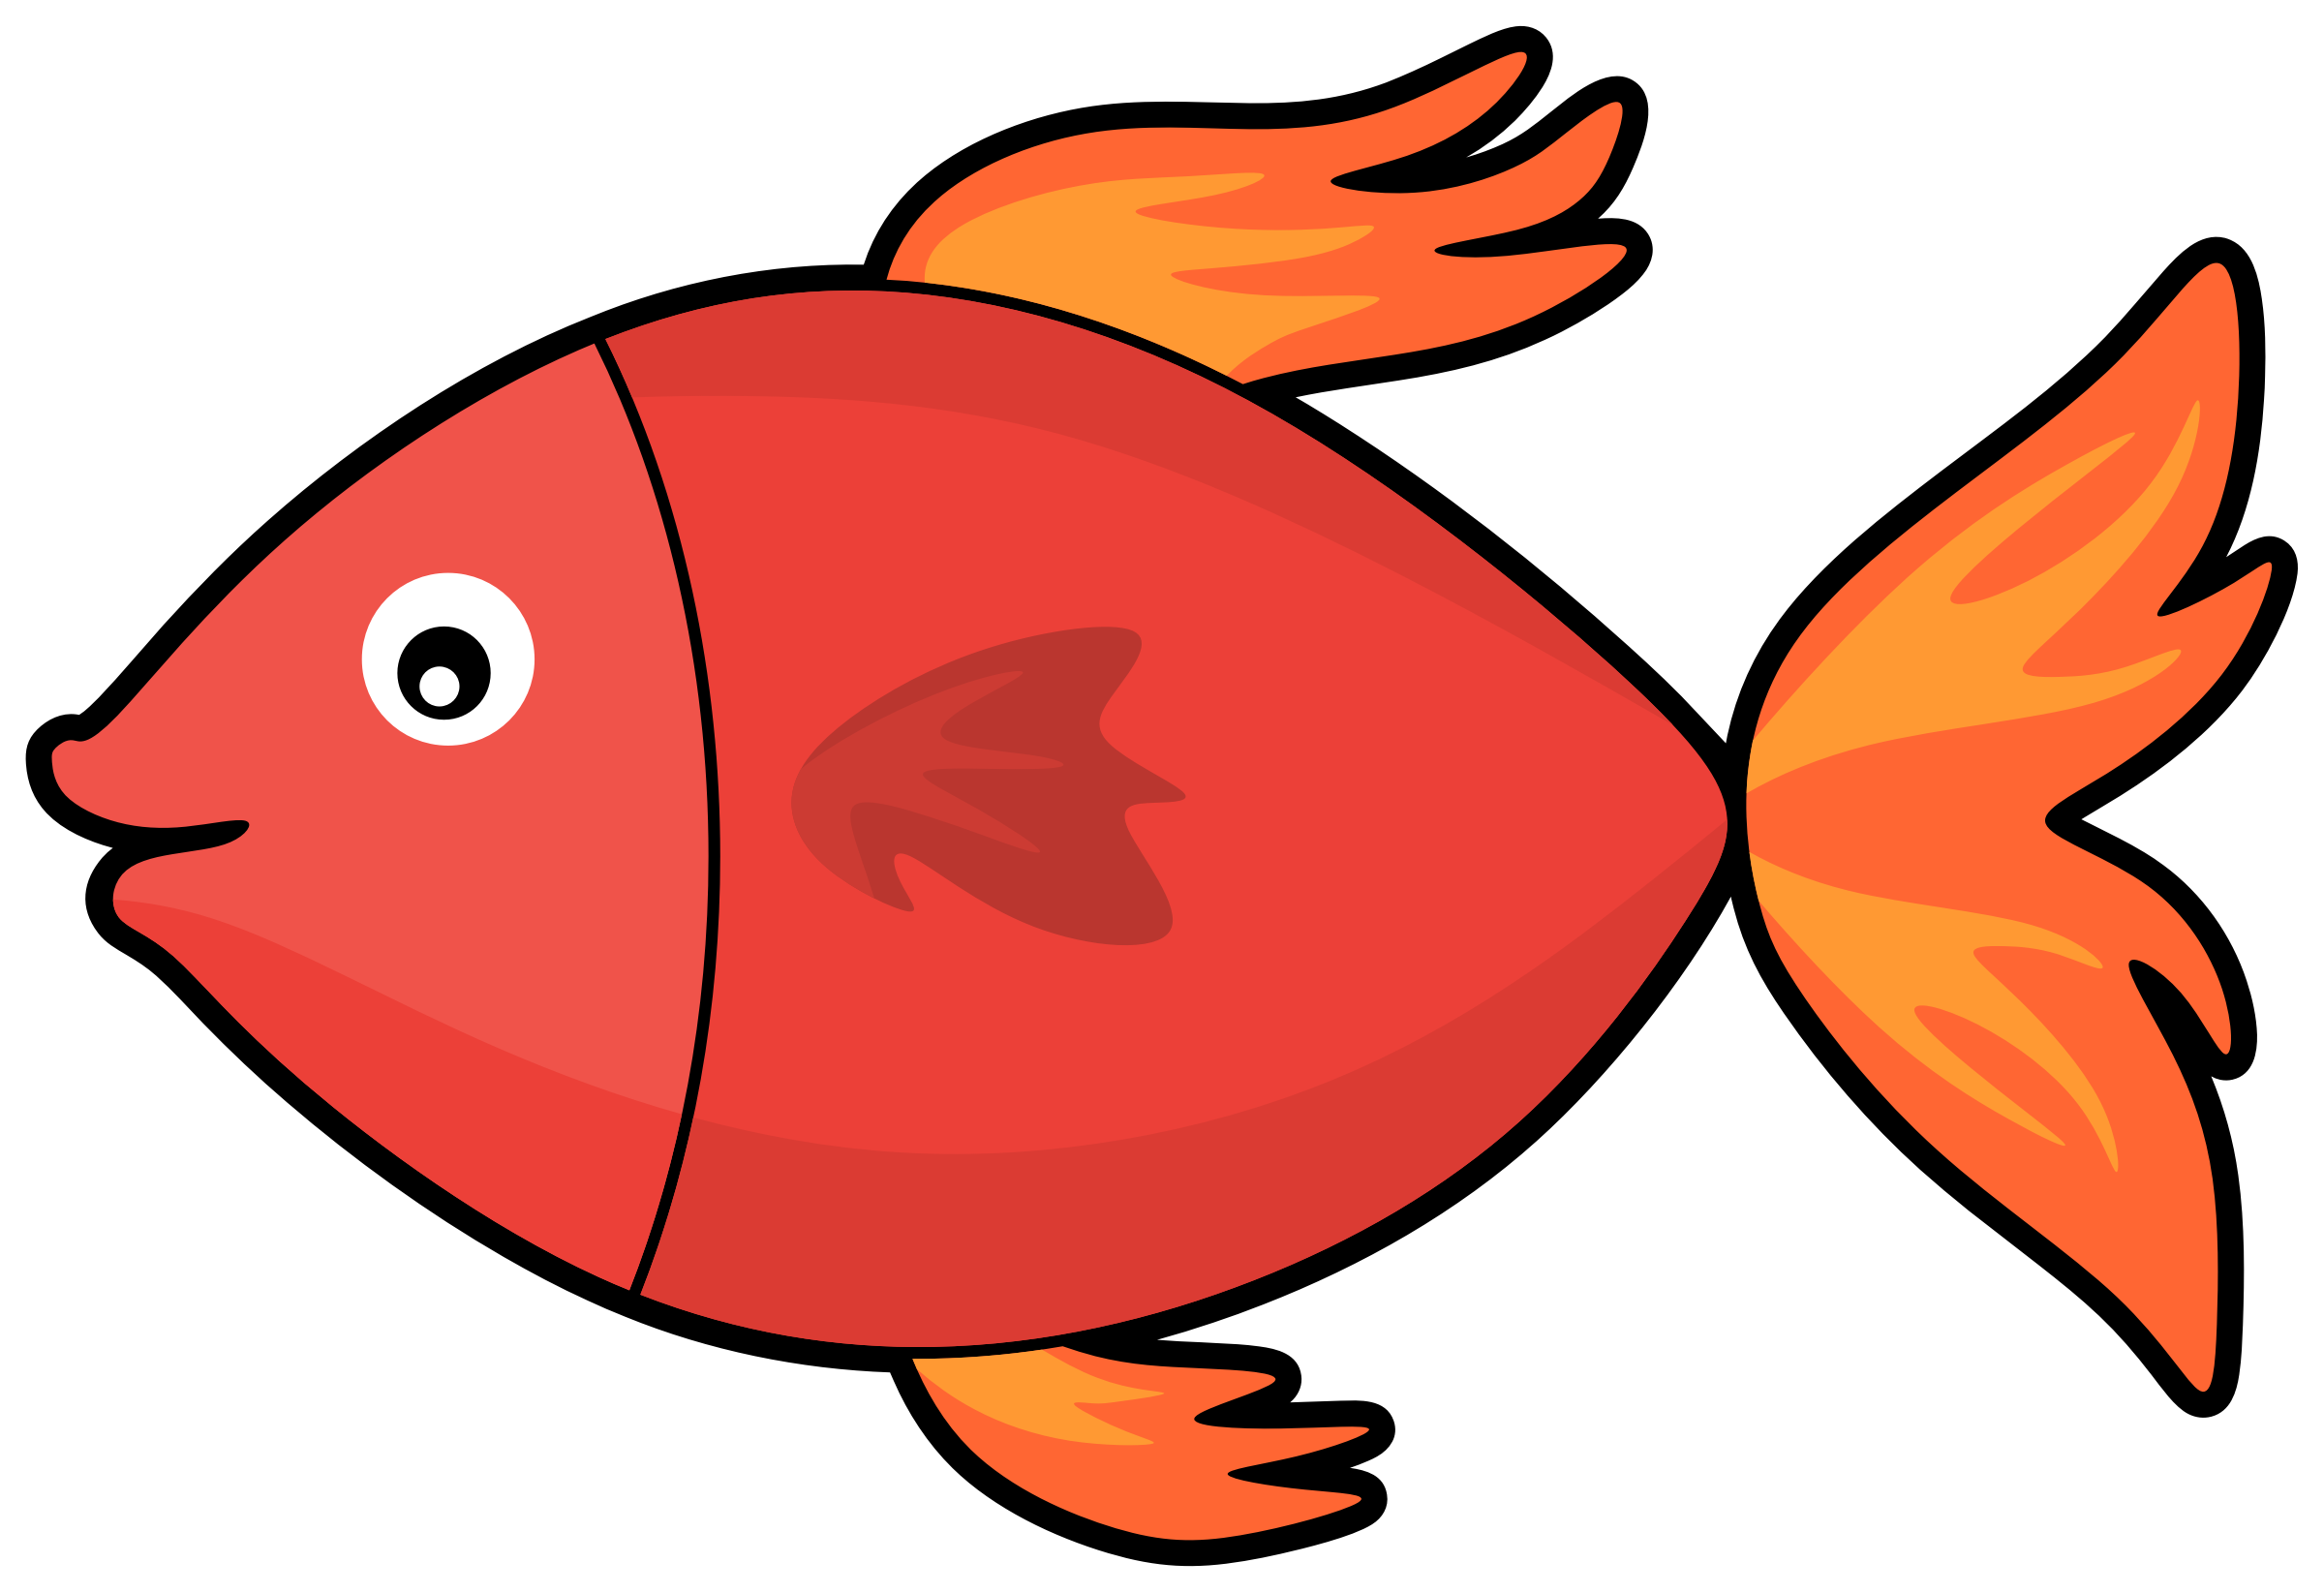 Butterfly Fish Clipart at GetDrawings.com | Free for personal use ...